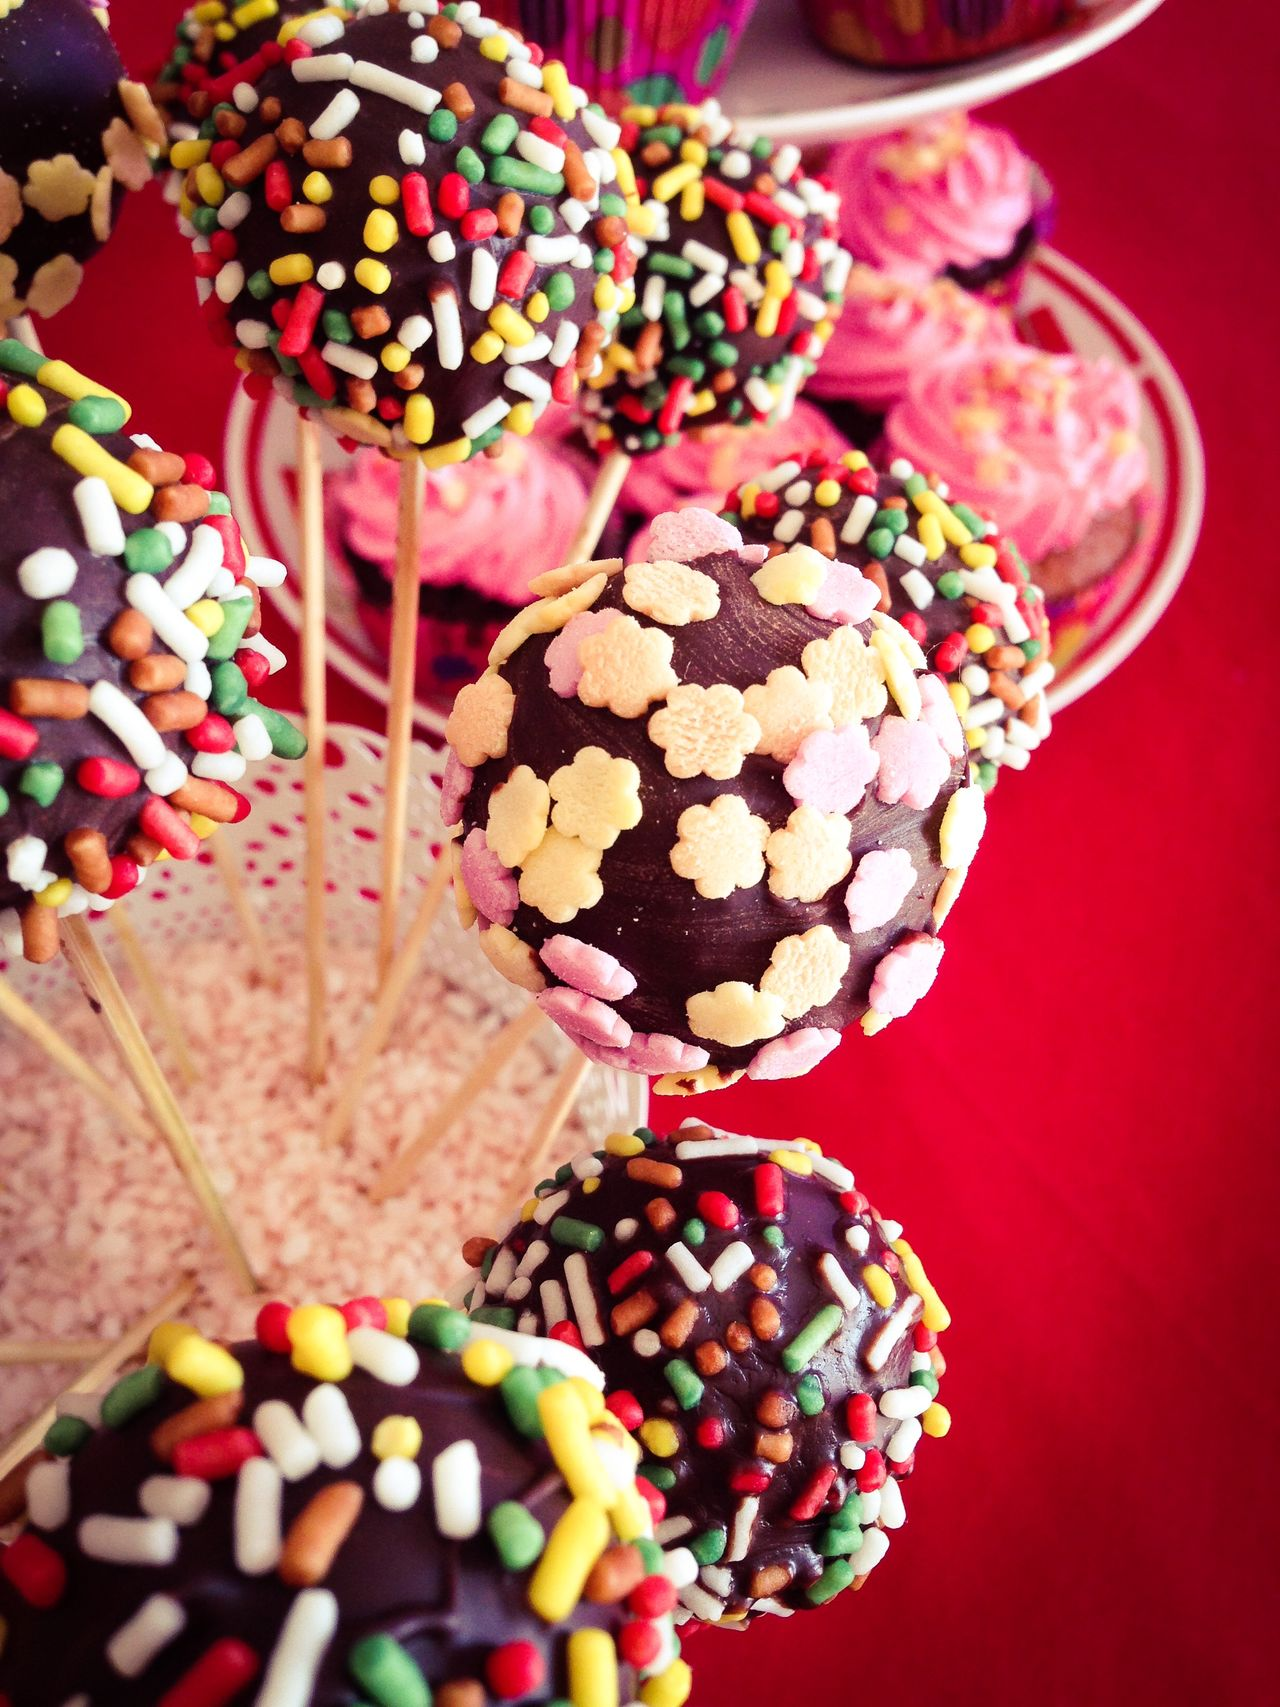 Delicious chocolate cakepops with sprinkles close up top view Above Cakepop Cakepops Choice Close-up Dessert Food Food And Drink Freshness Indoors  Large Group Of Objects Many Party Popcake Sprinkles Stick Sugar Sweet Sweet Food Table Top View Variation